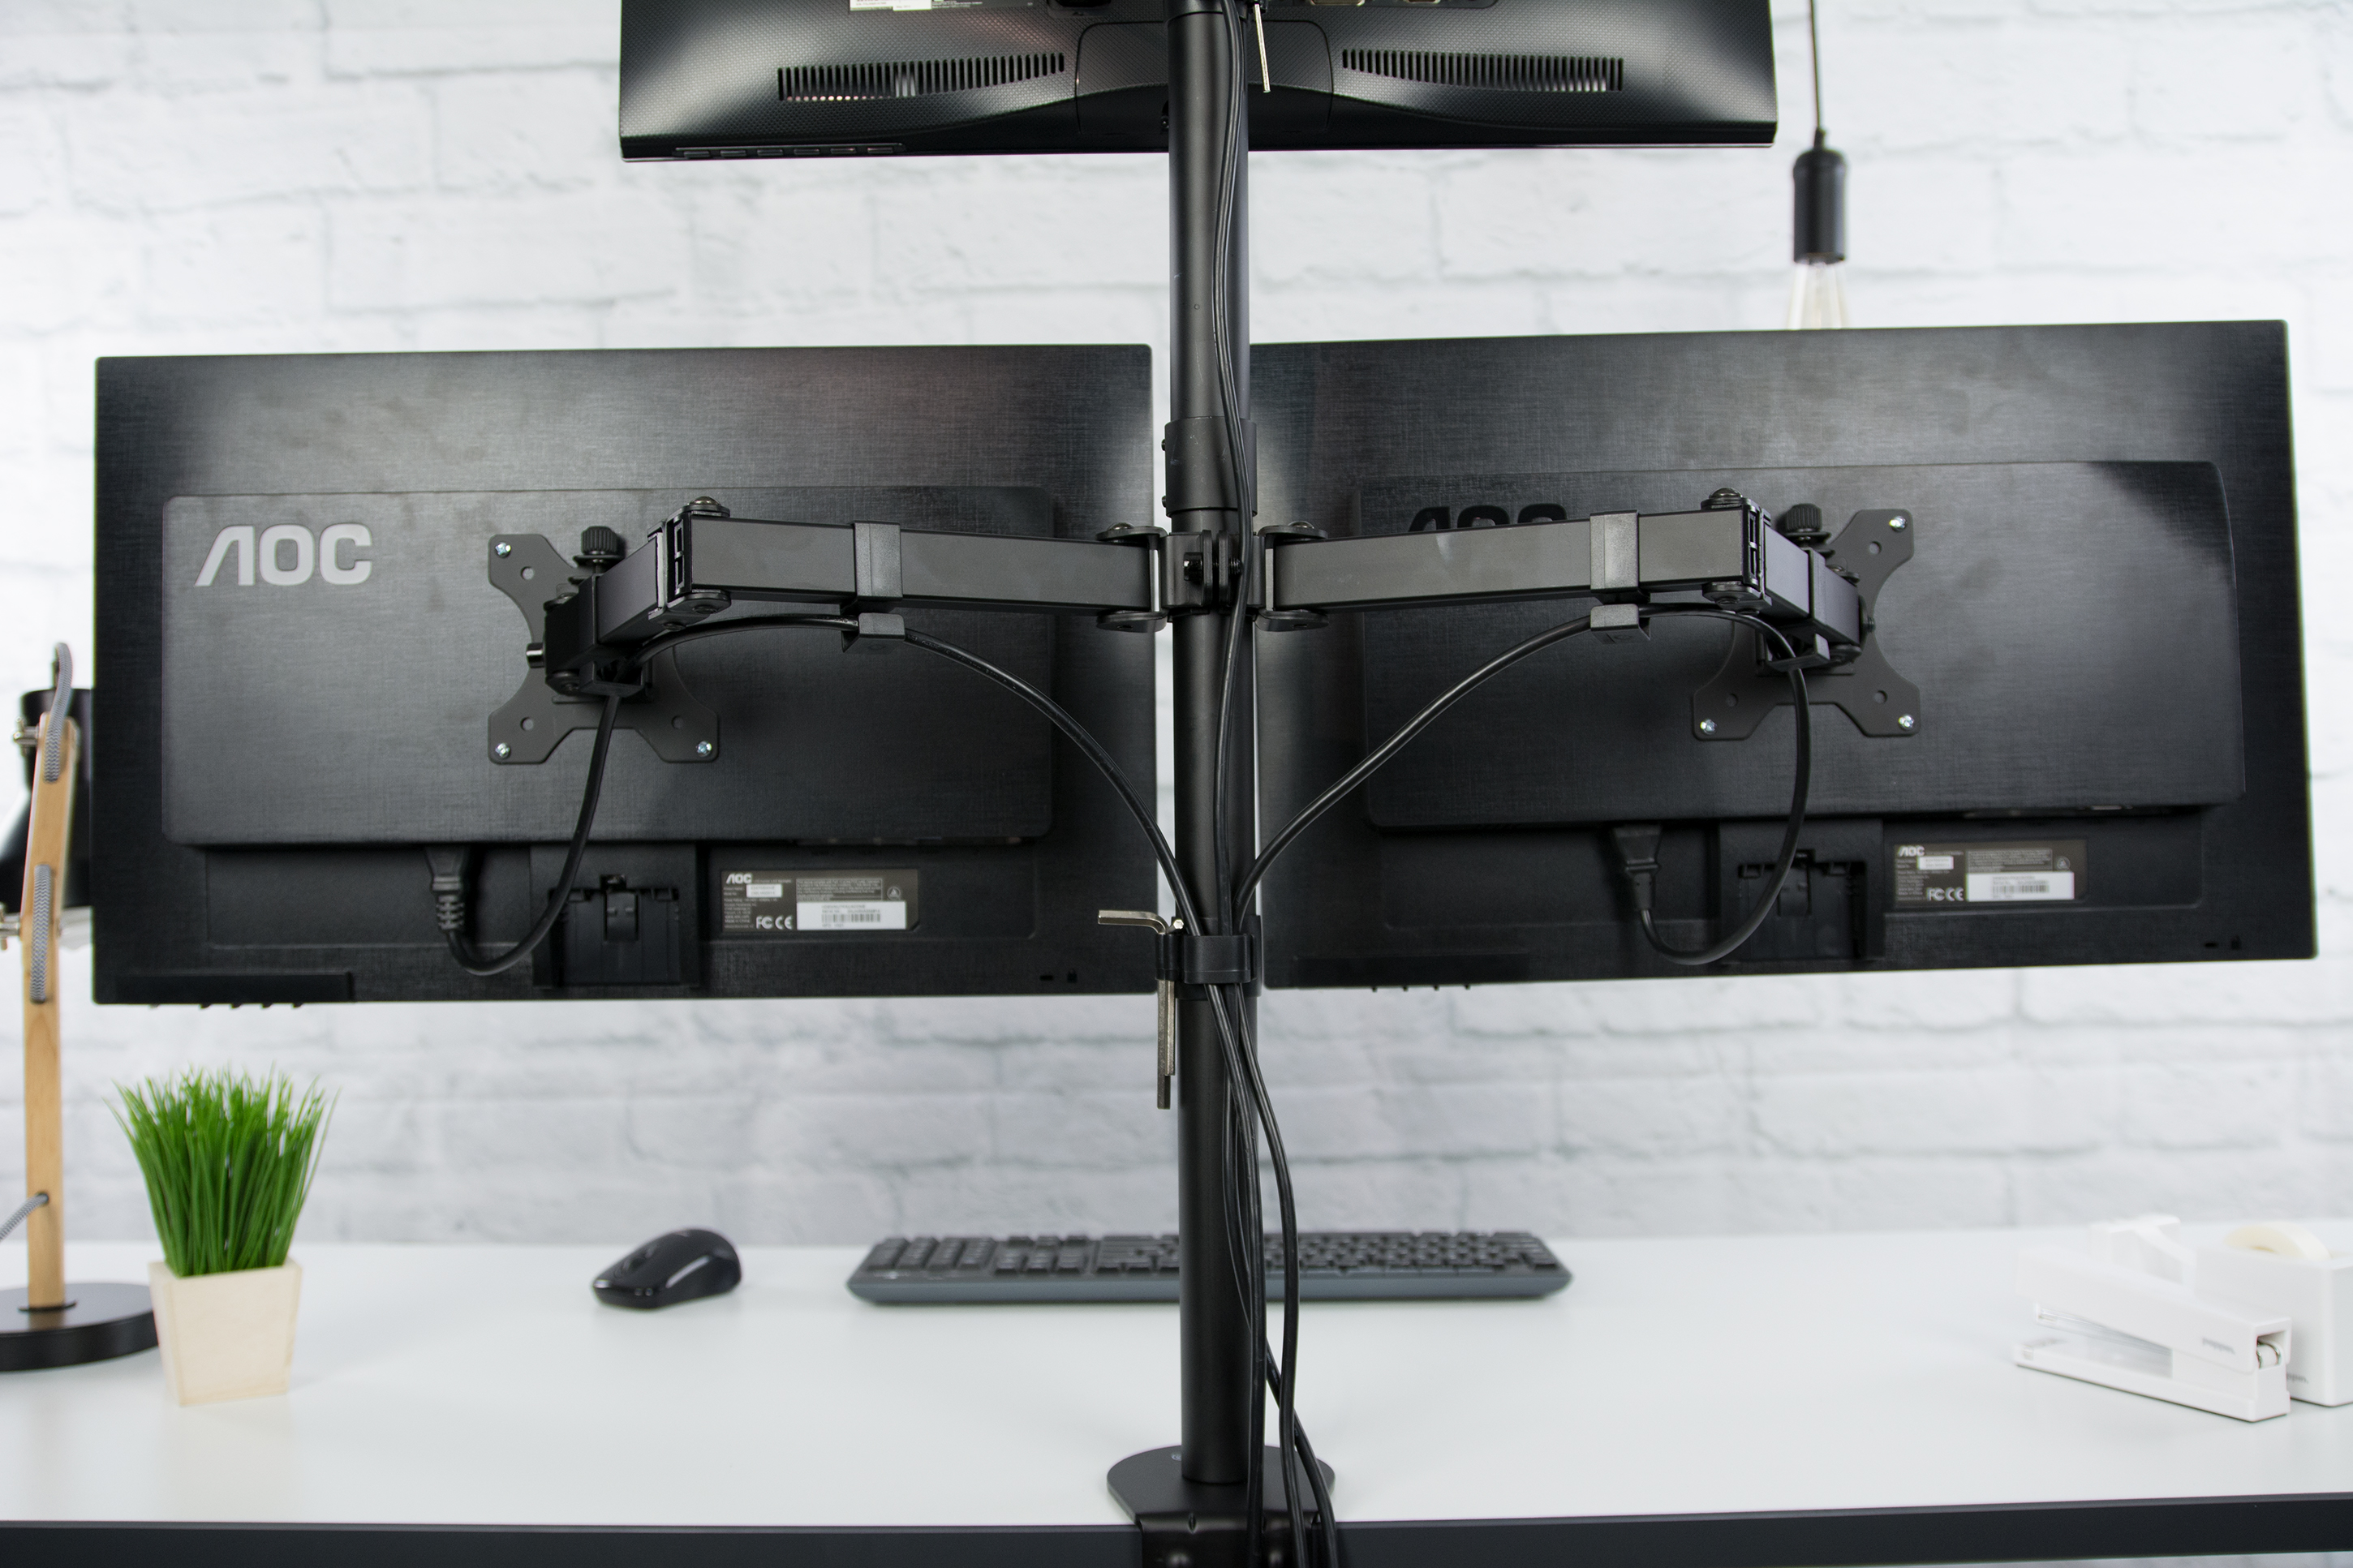 VIVO Triple LCD Monitor Desk Mount Stand Heavy Duty Fully Adjustable 3 Screens